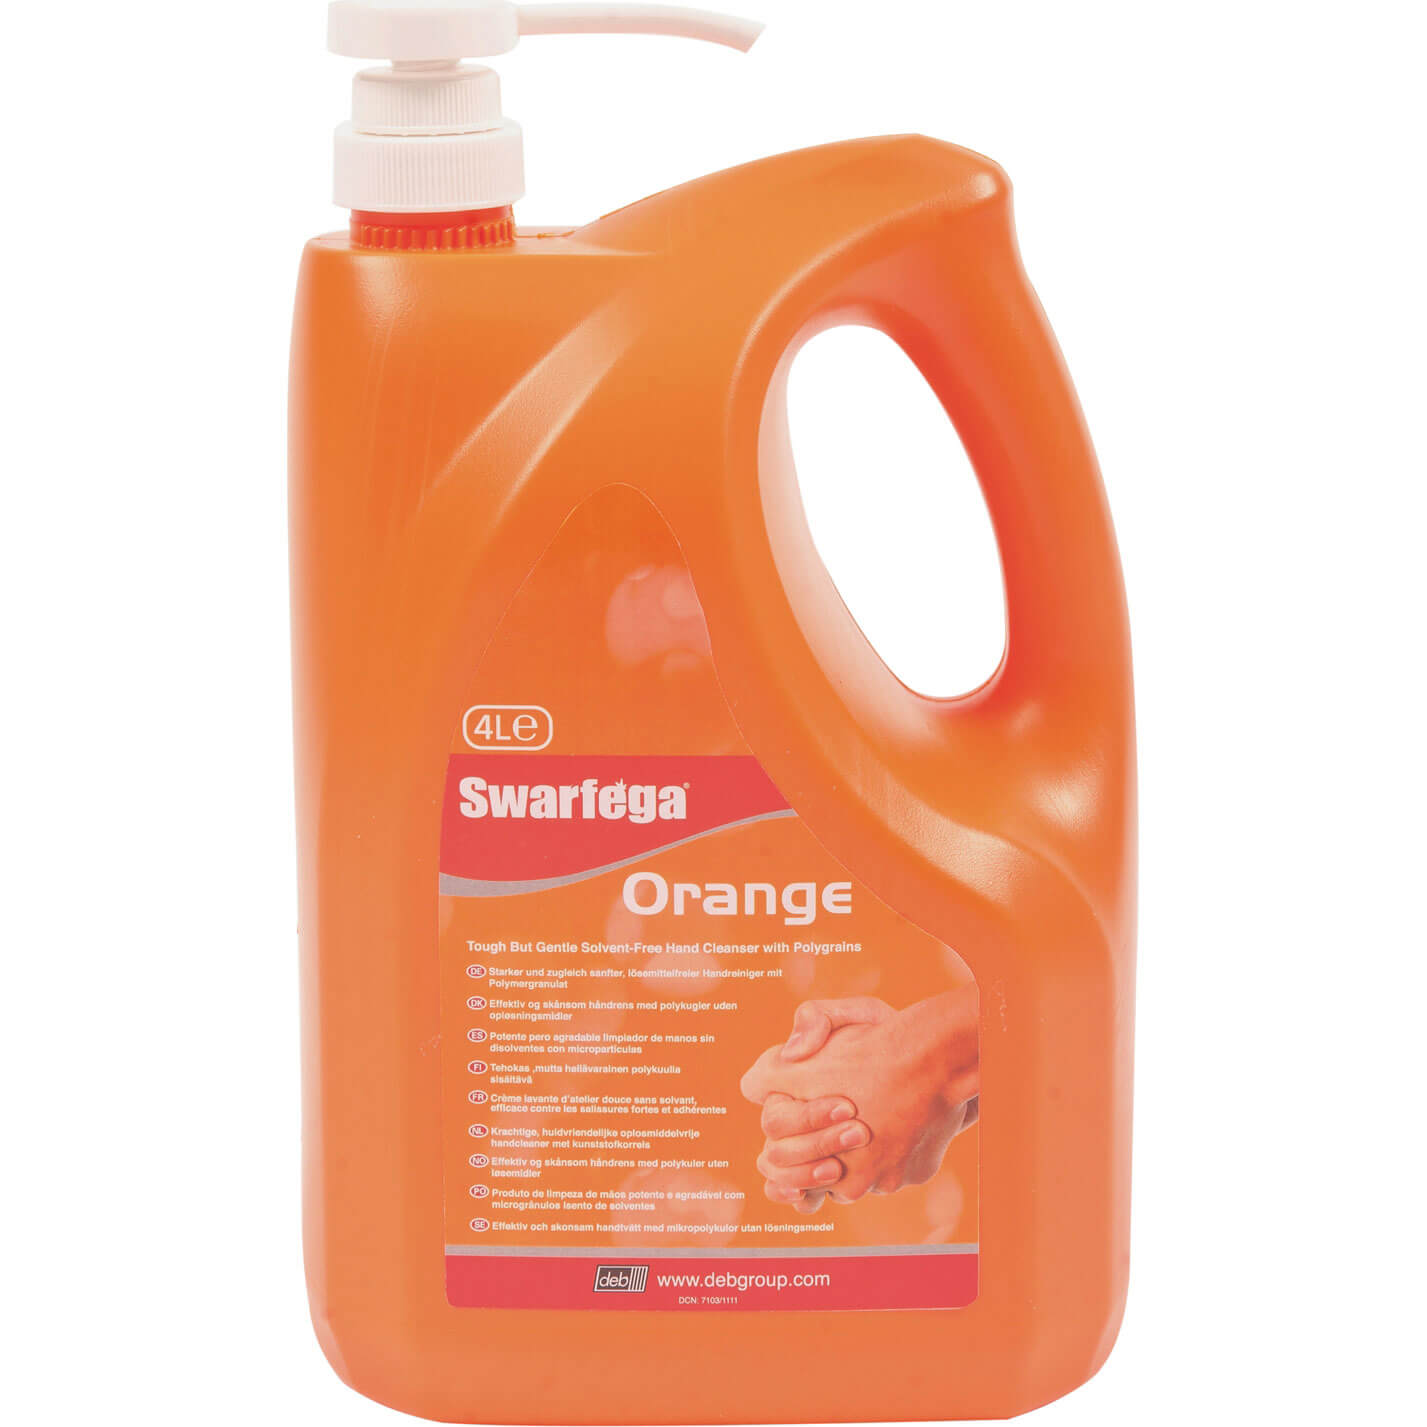 Image of Deb Swarfega Orange Hand Cleaner Cartridge 4l